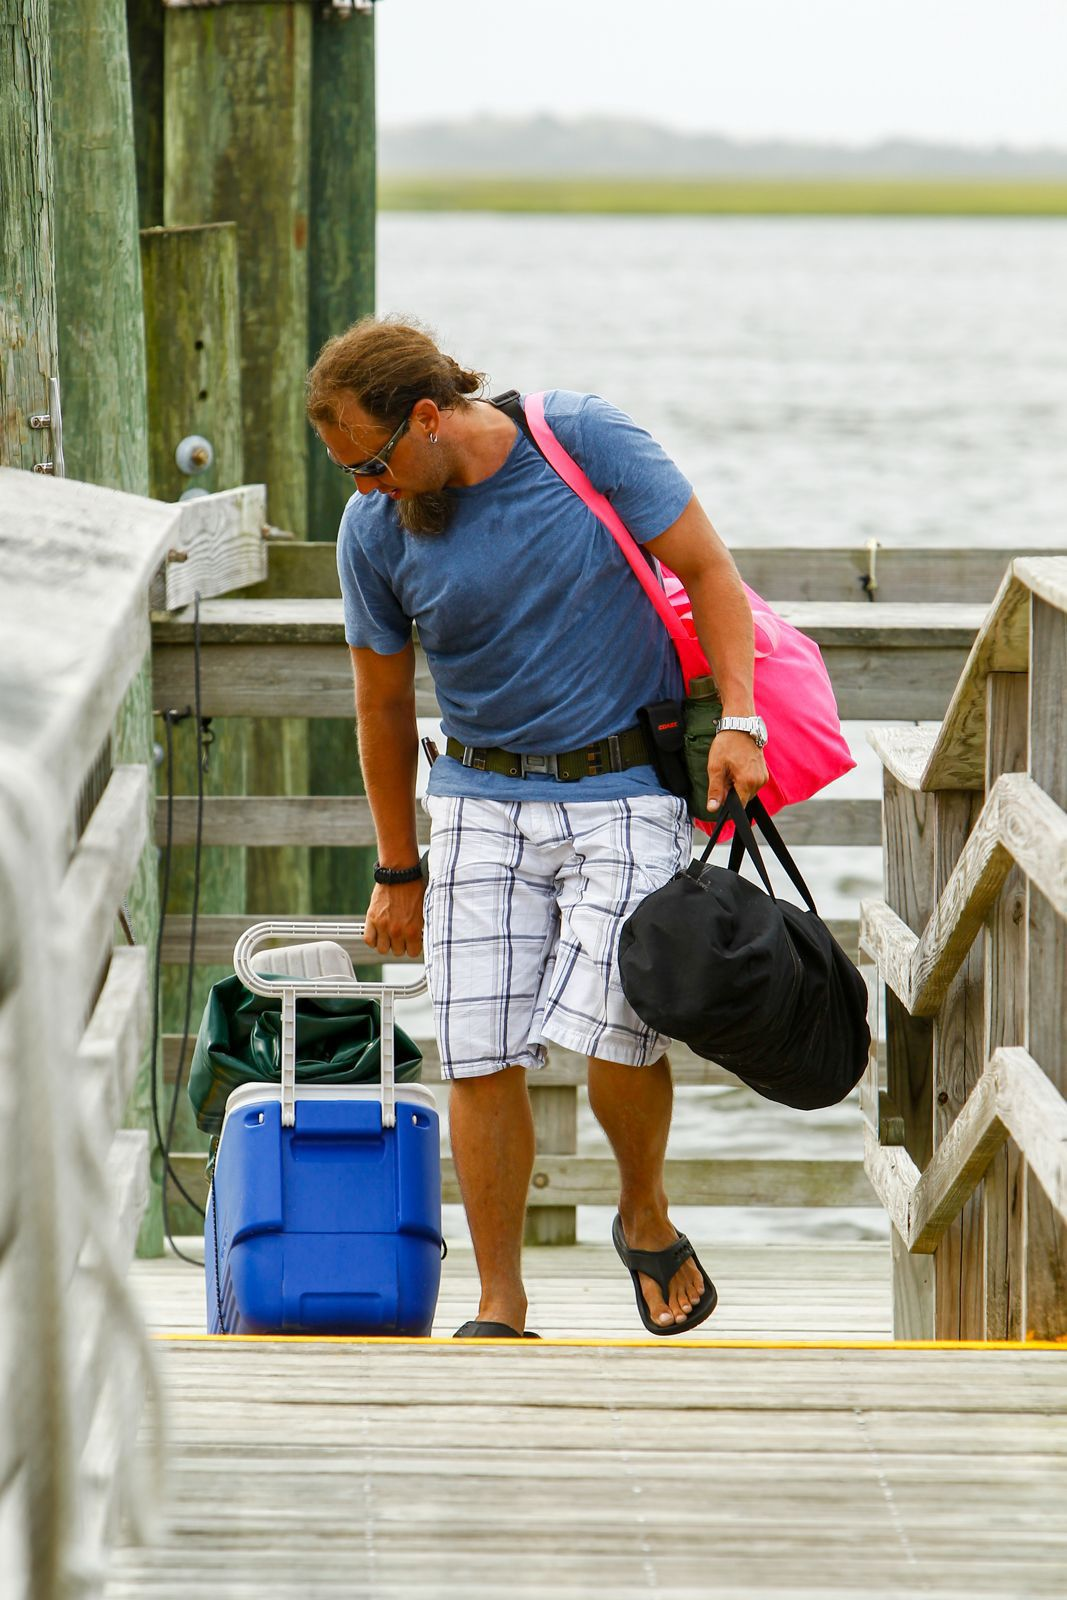 BC-US--Tropical Weather, 10th Ld-Writethru,968Vacationers leave as Arthur nears North Carolina